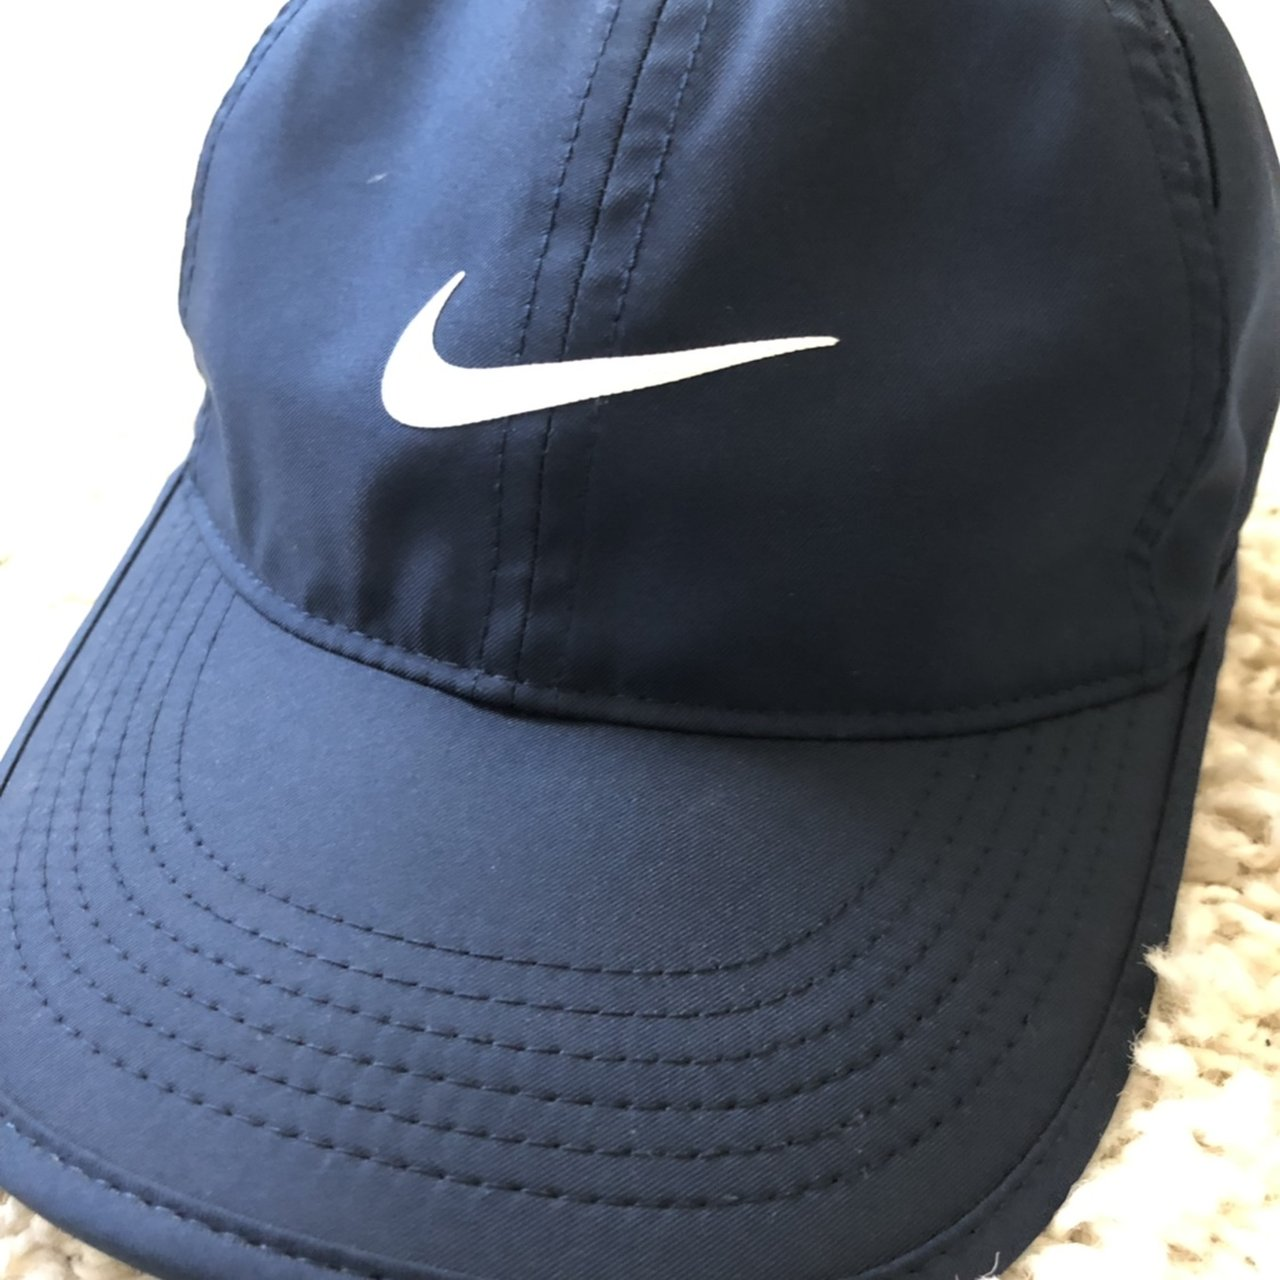 57270dc5359 Nike hat Navy blue Good condition Worn twice - Depop